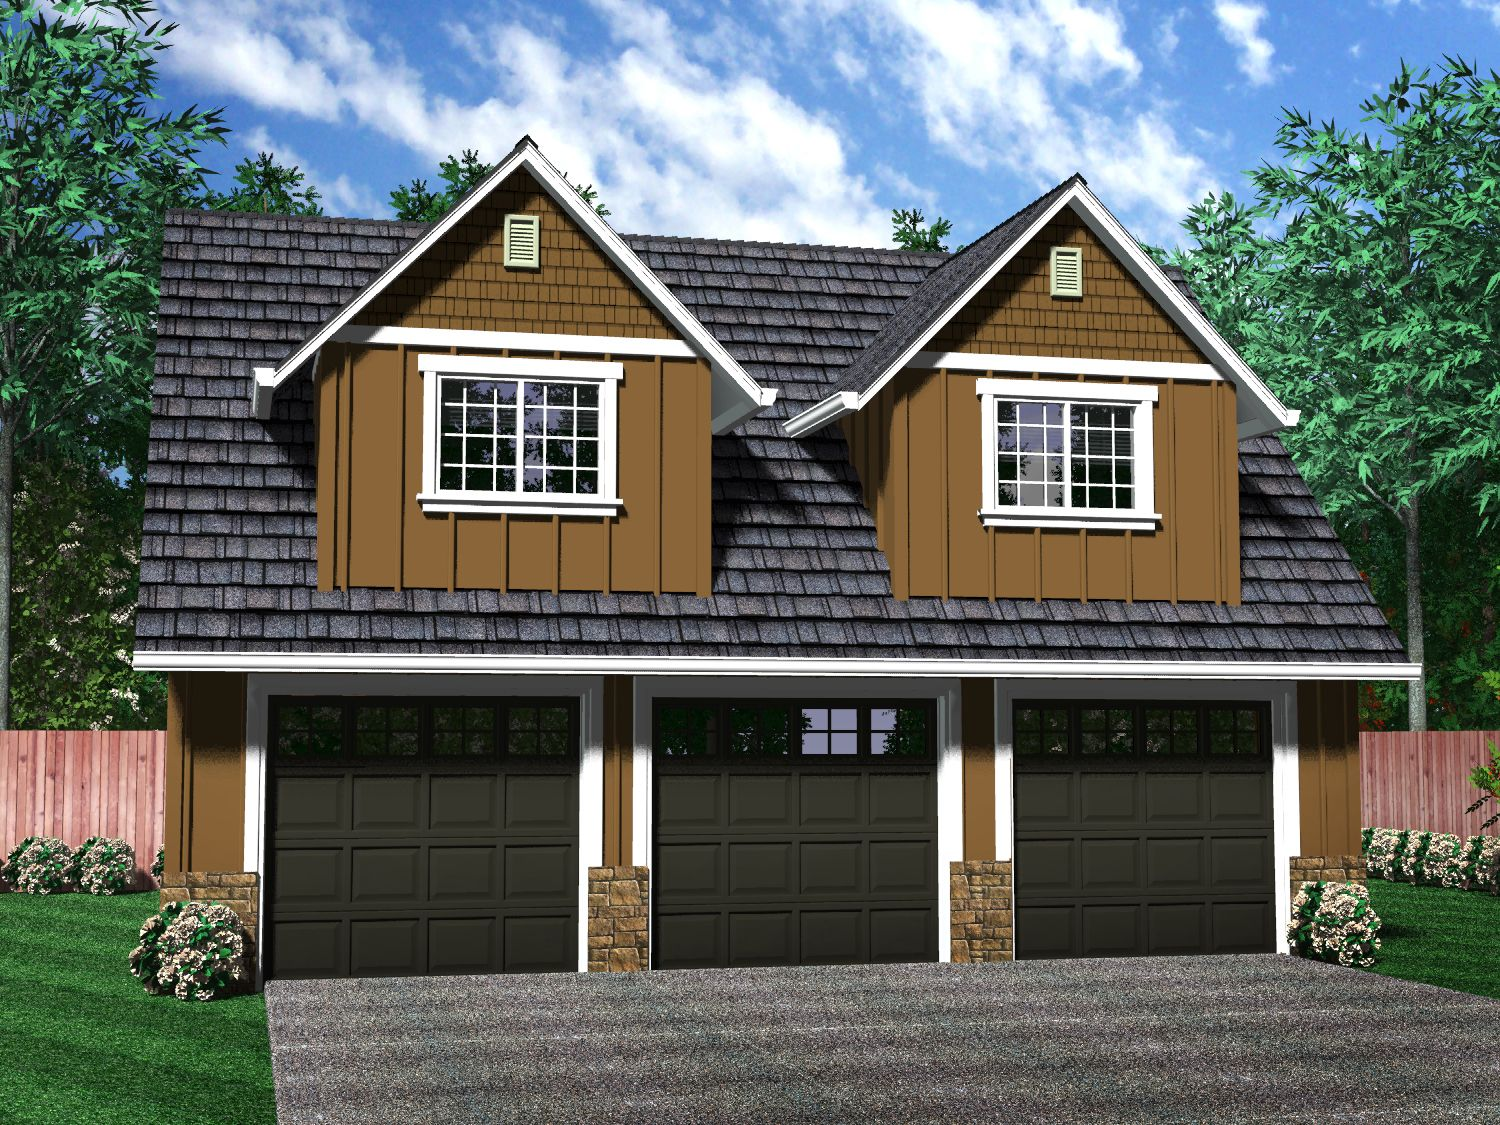 Painting of independent and simplified life with garage for Two bedroom garage apartment plans